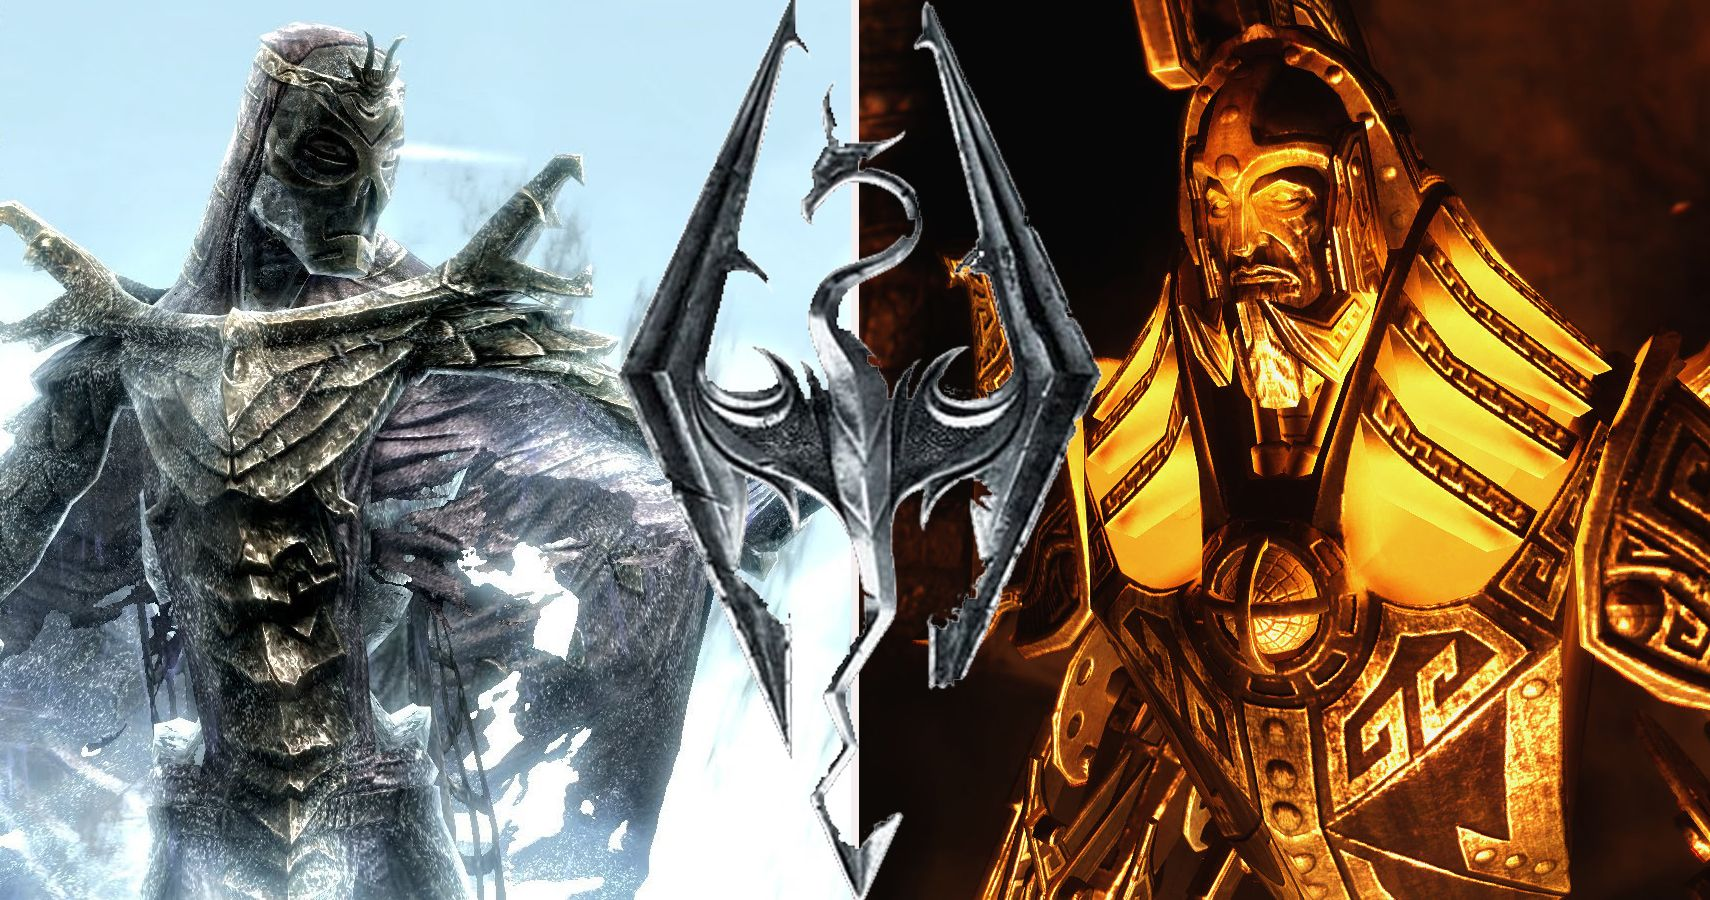 The Most Powerful Enemies In Skyrim | TheGamer